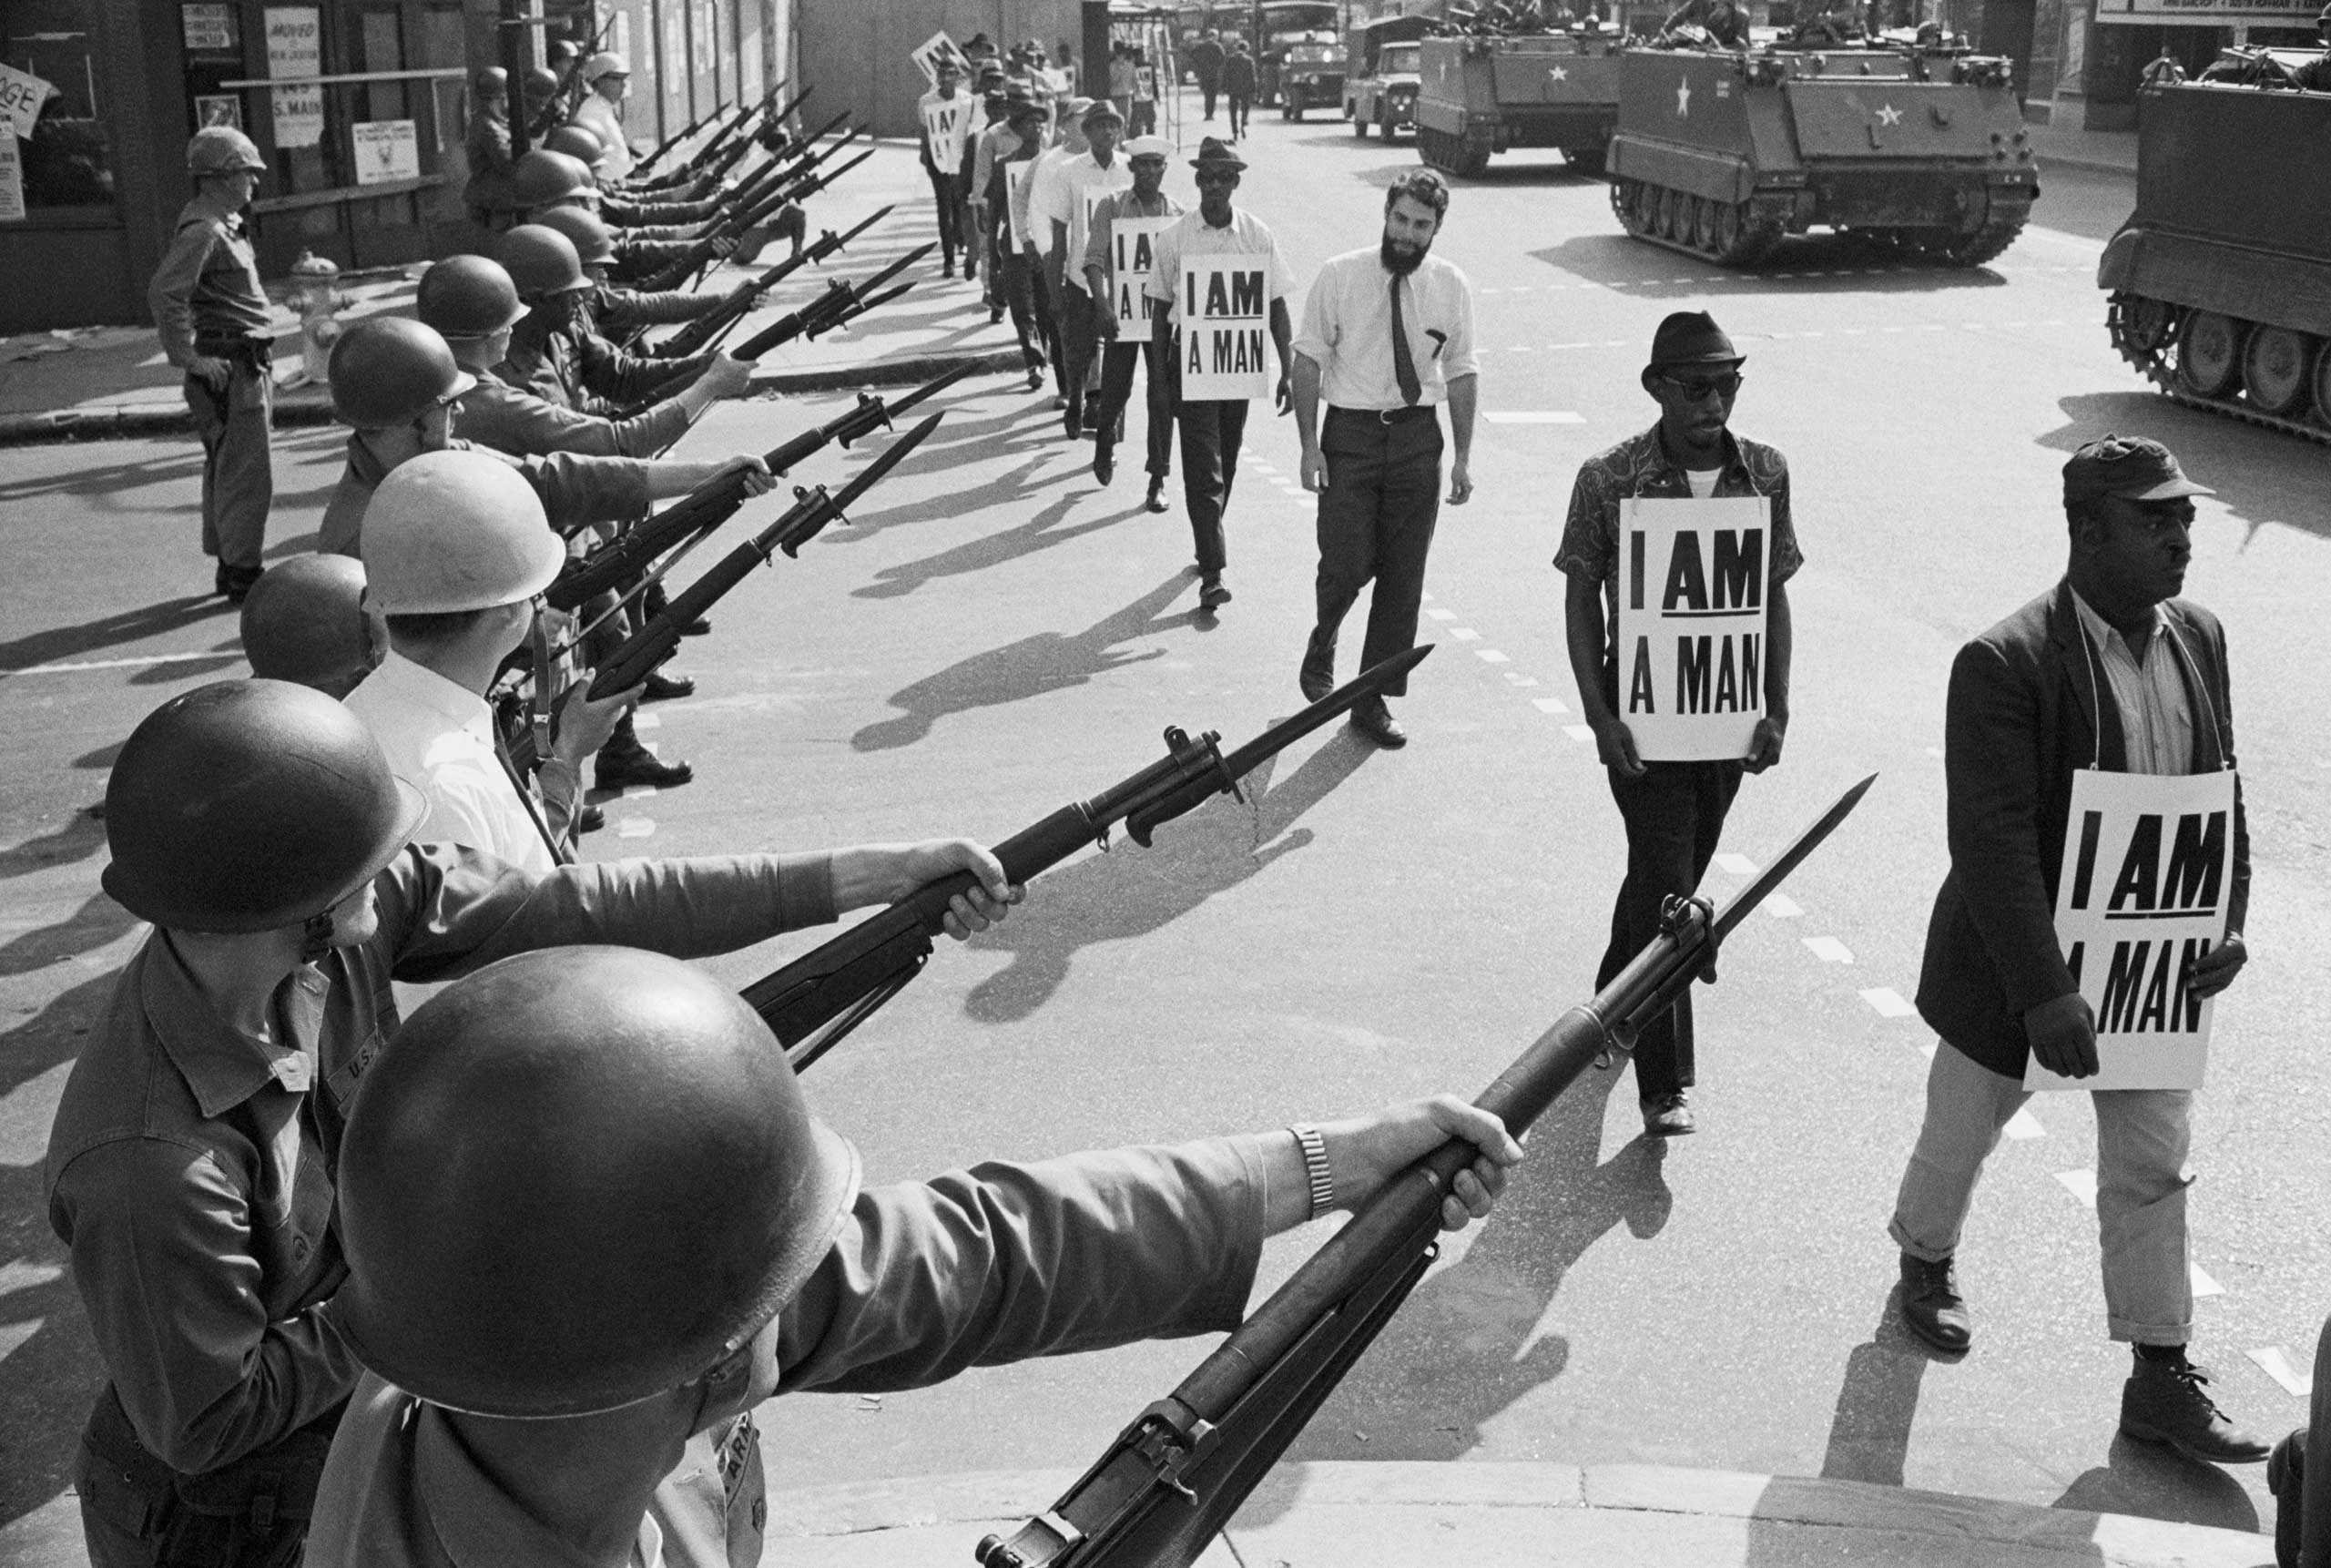 U.S. National Guard troops block off Beale Street as Civil Rights marchers wearing placards reading,  I AM A MAN  pass by on March 29, 1968. Memphis, Tenn.